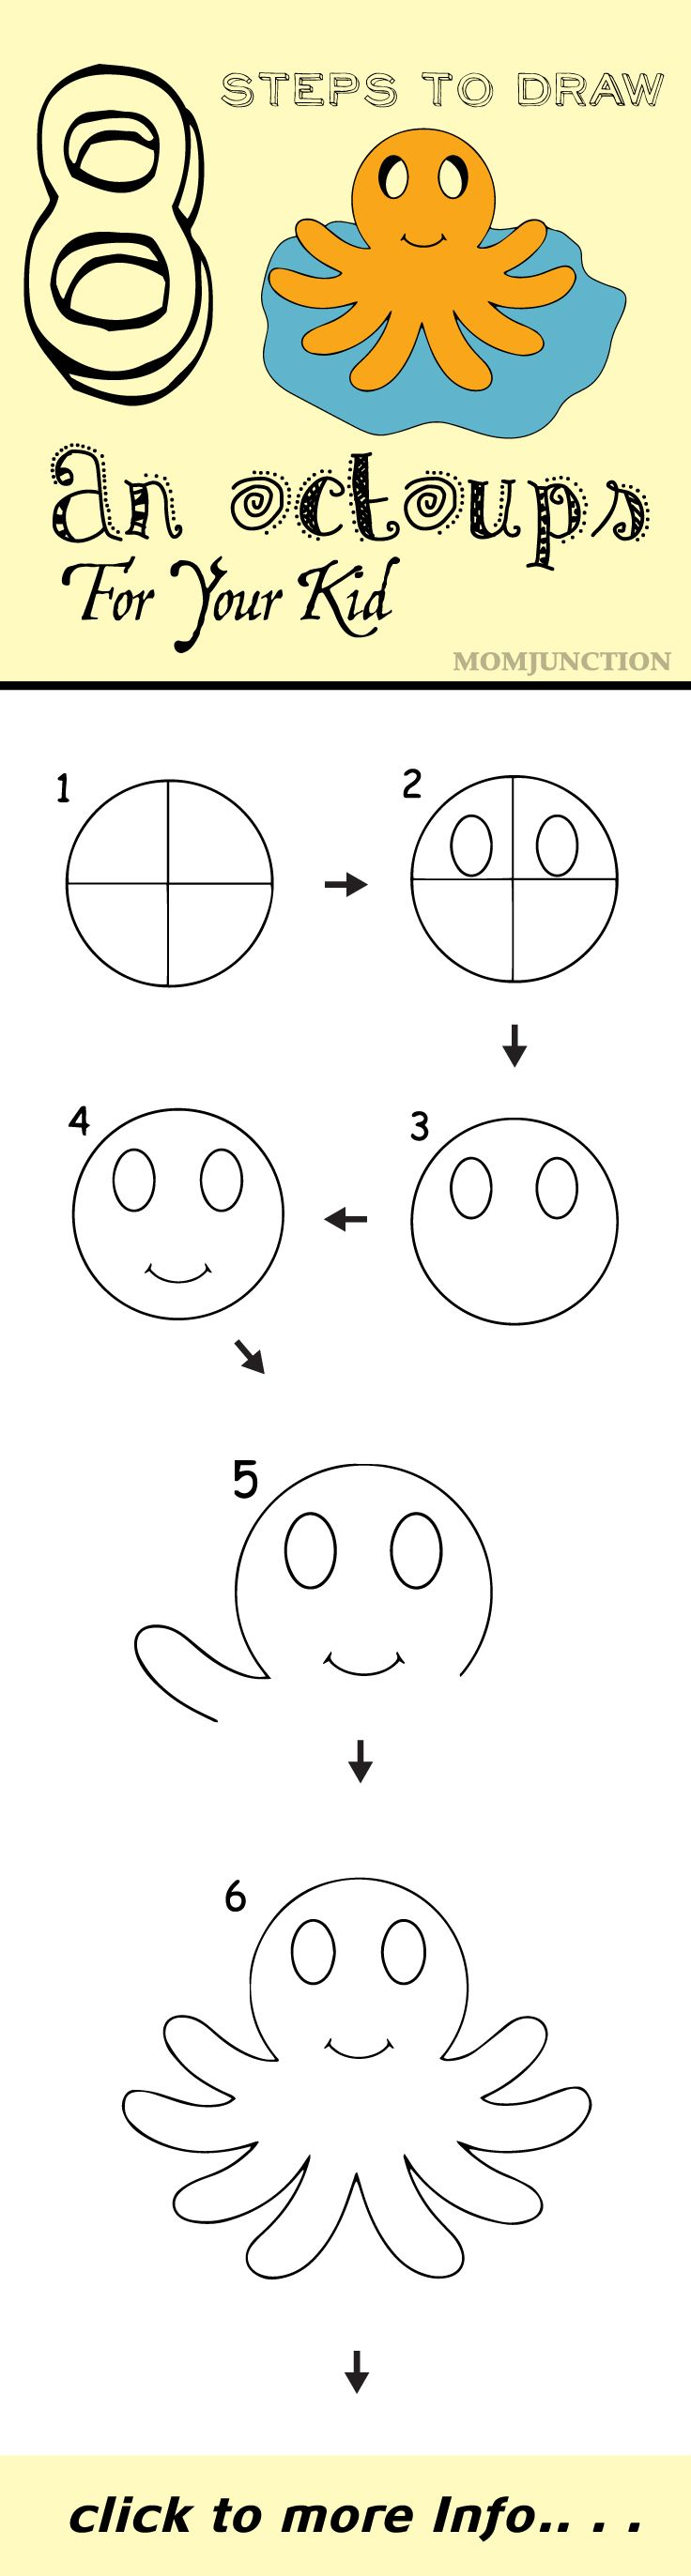 8 Step By Step Tutorial For Drawing An Octopus For Your Kids